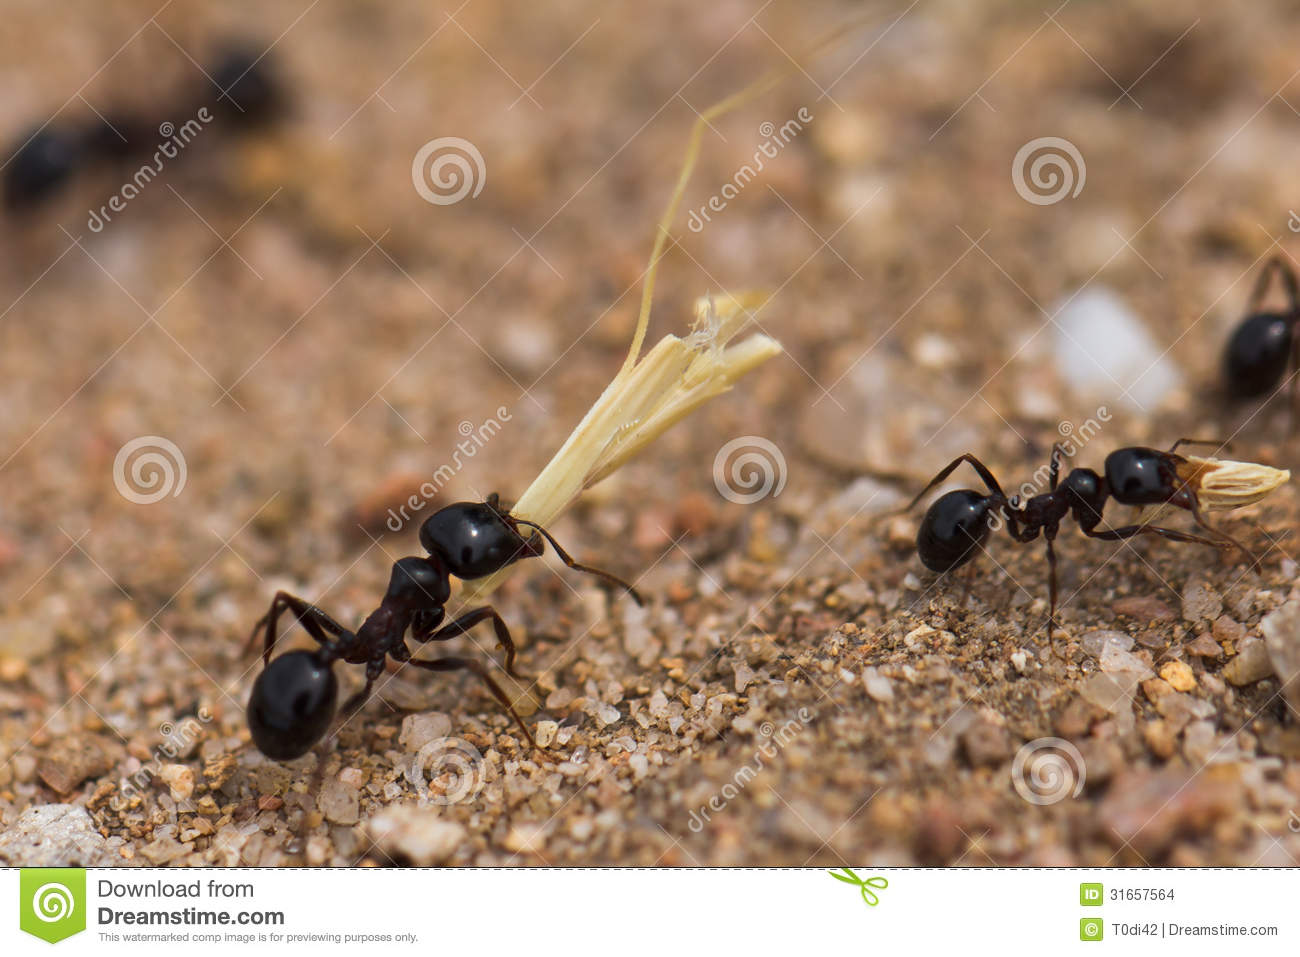 Working ants - photo#21